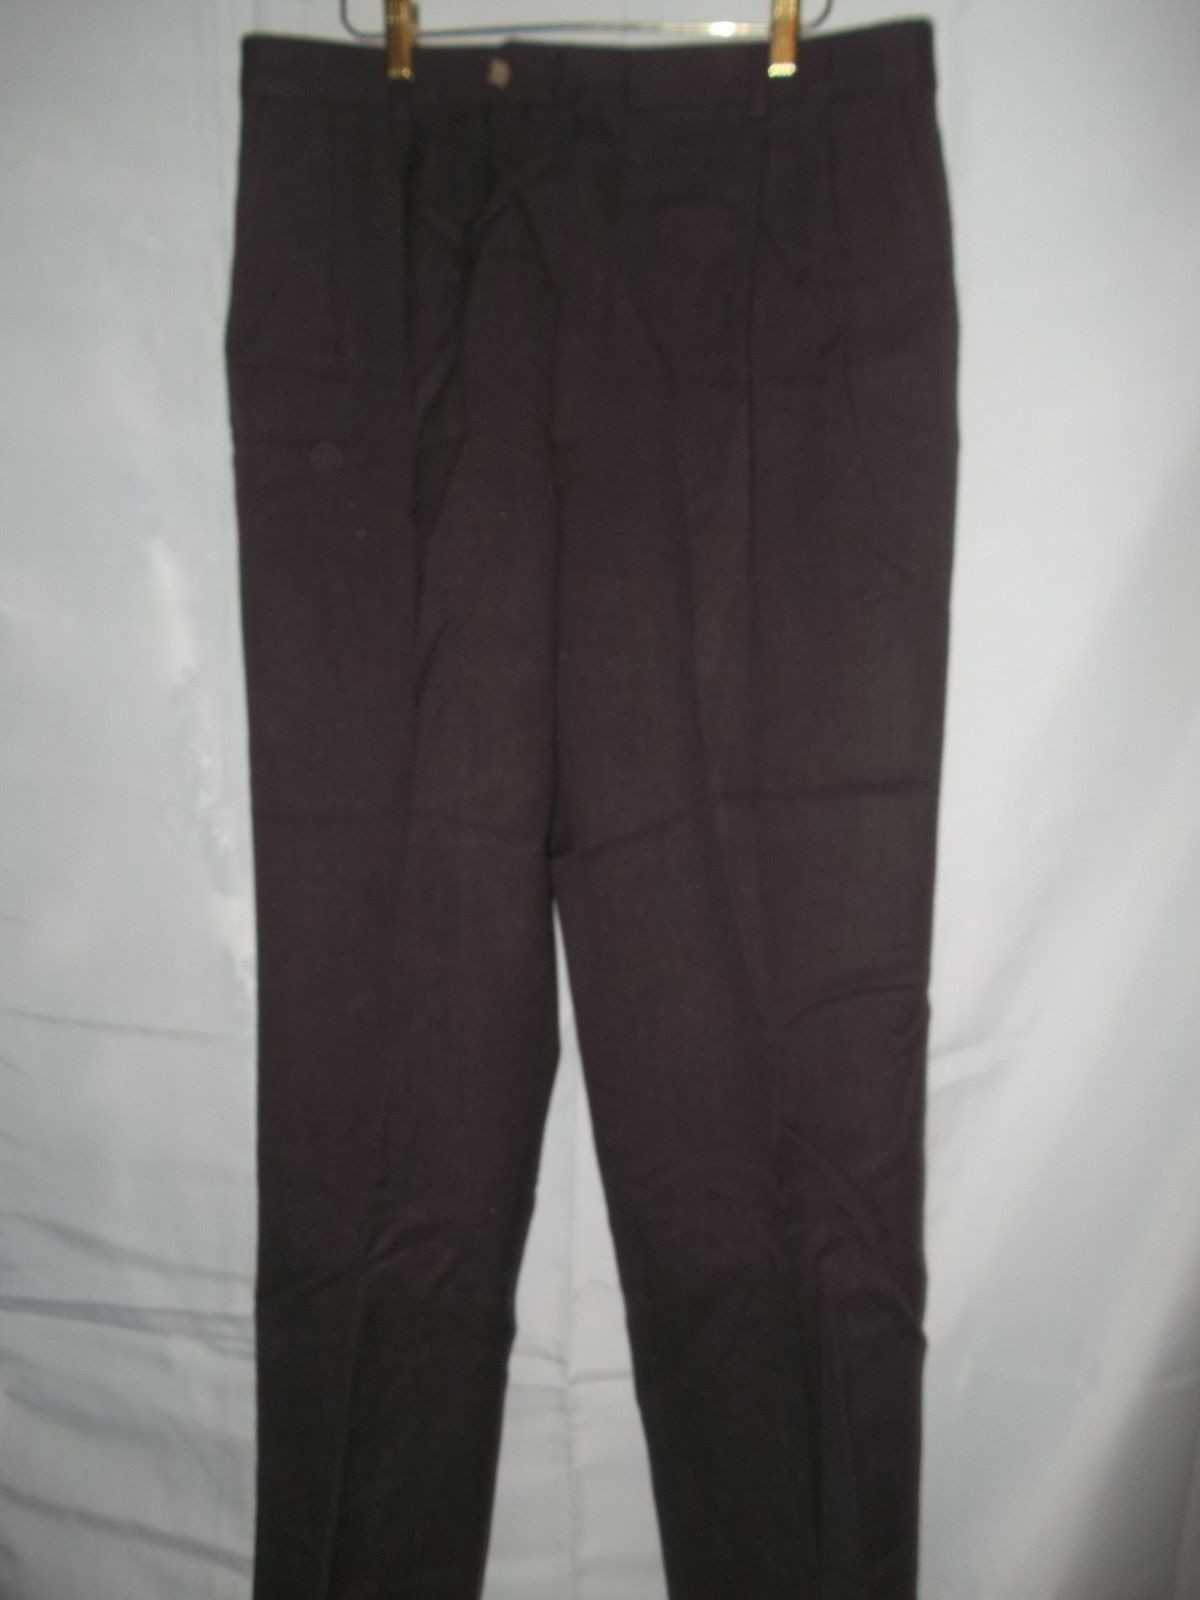 Mens Size 36 x 31 Saks Fifth Avenue Brown Wool Pants Slacks